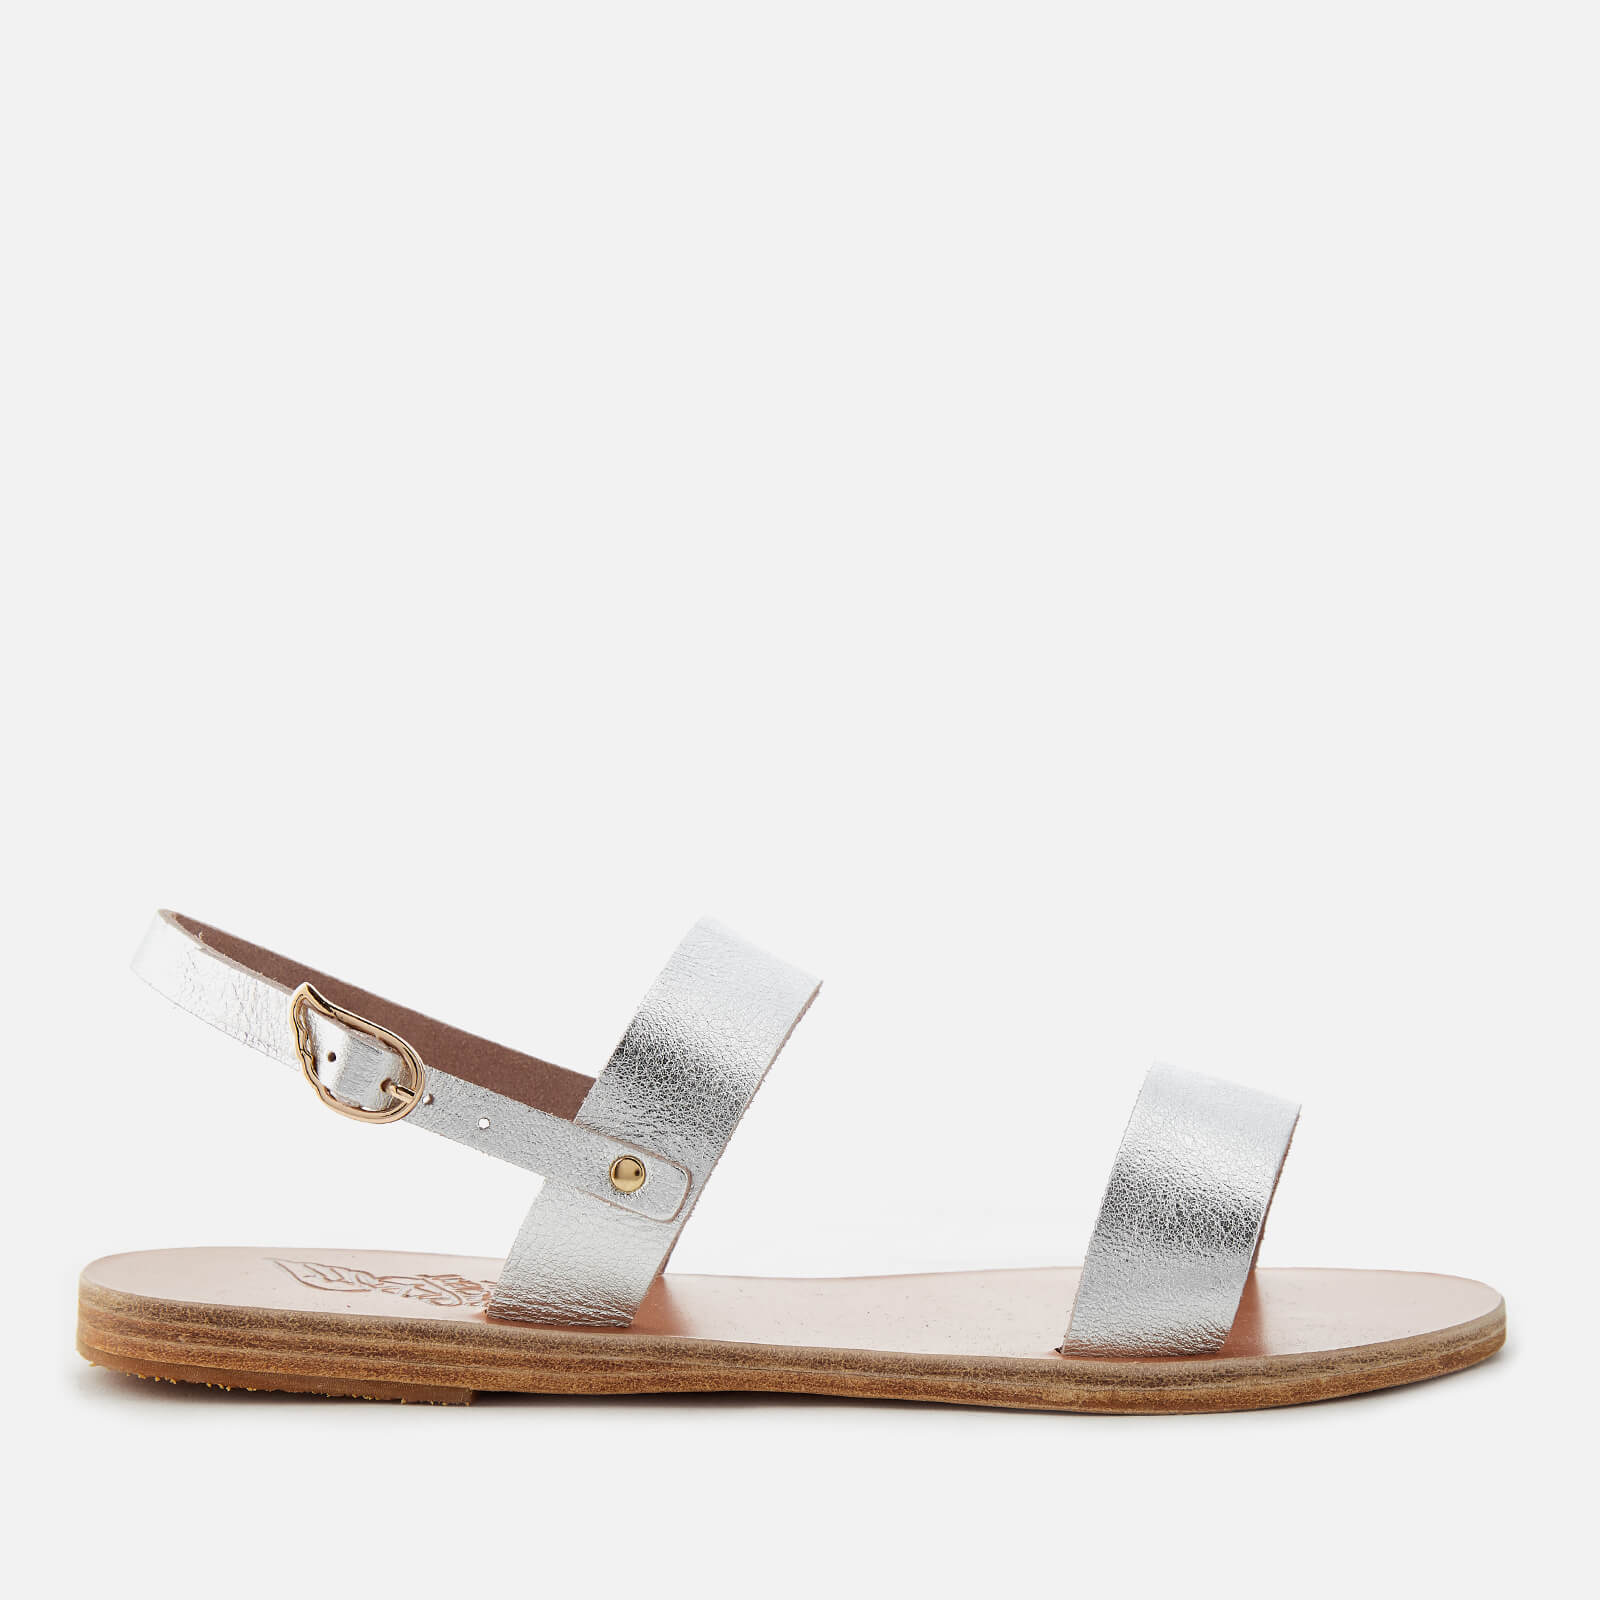 be17609a8 Ancient Greek Sandals Women s Clio Metallic Double Strap Sandals - Metal  Silver - Free UK Delivery over £50